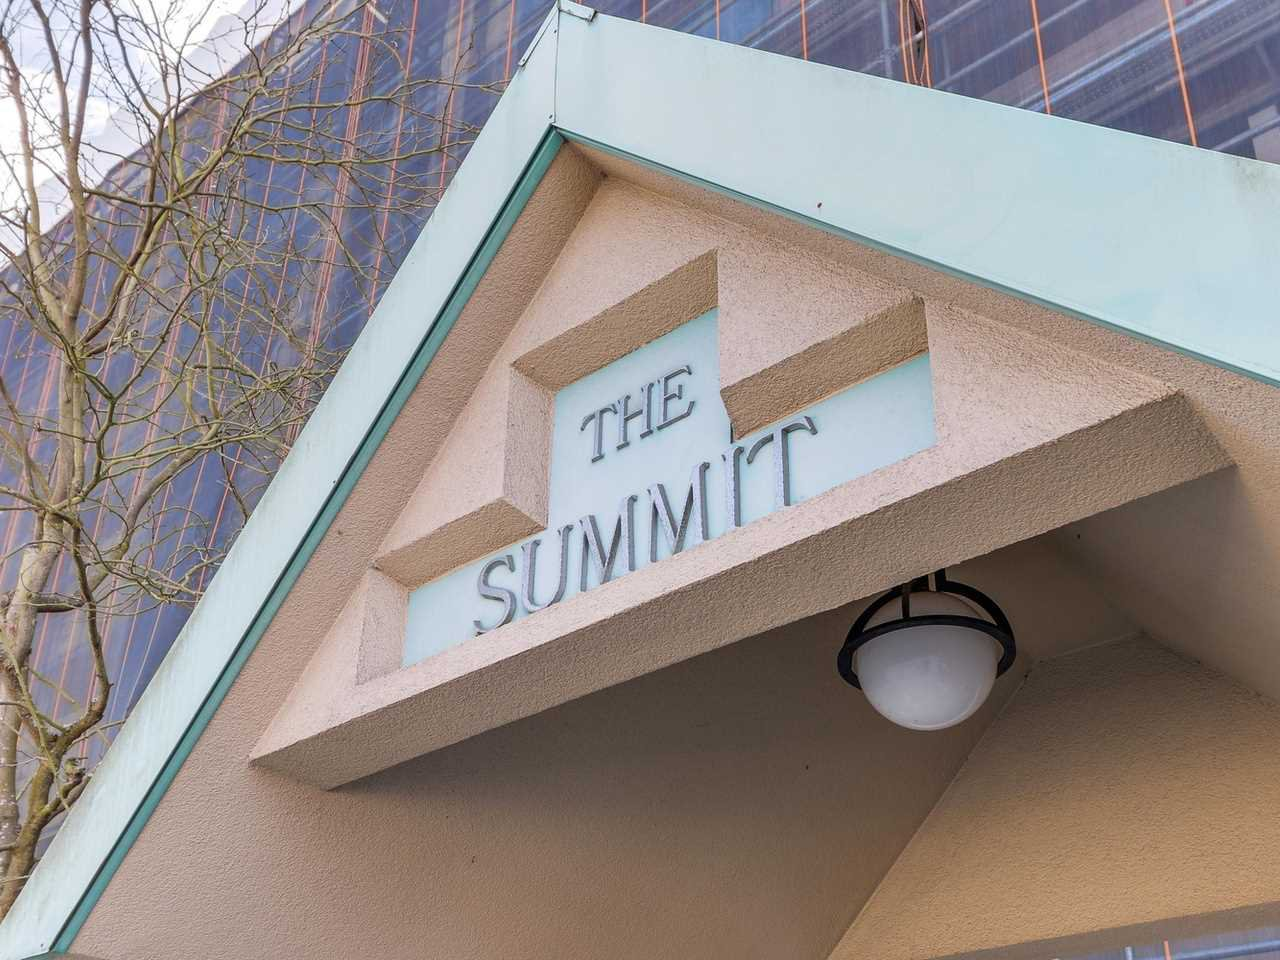 """Main Photo: 206 15466 NORTH BLUFF Road: White Rock Condo for sale in """"The Summit"""" (South Surrey White Rock)  : MLS®# R2159623"""